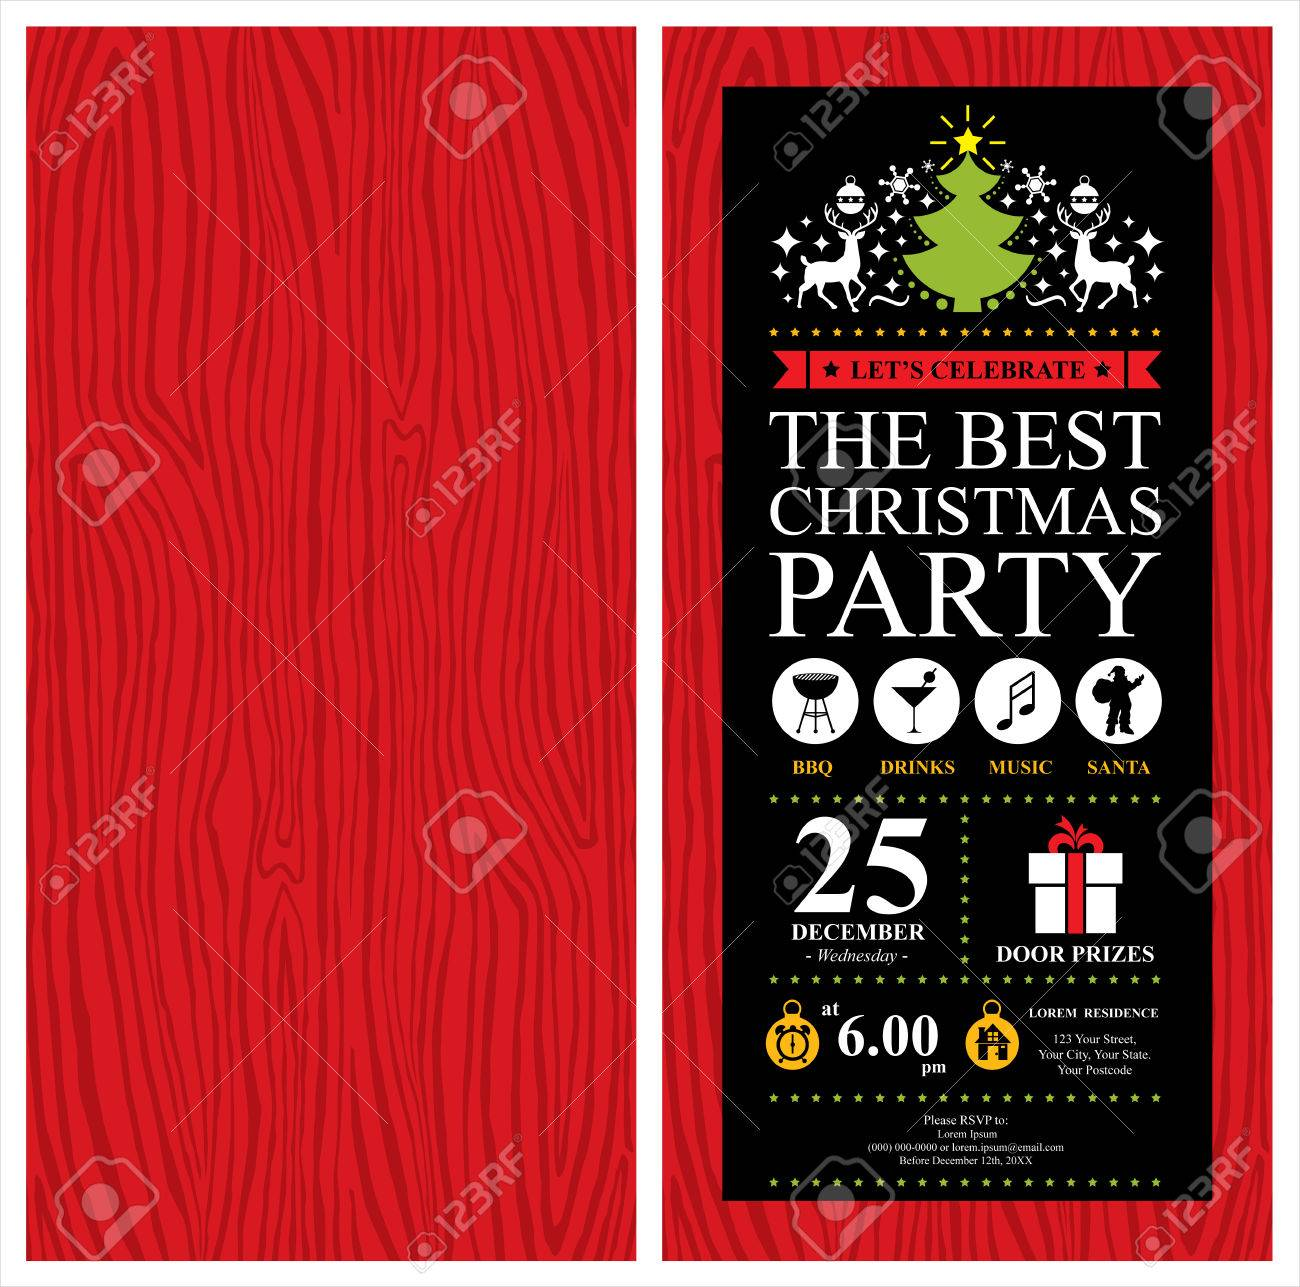 Christmas Party Invitation Card Royalty Free Cliparts, Vectors ...